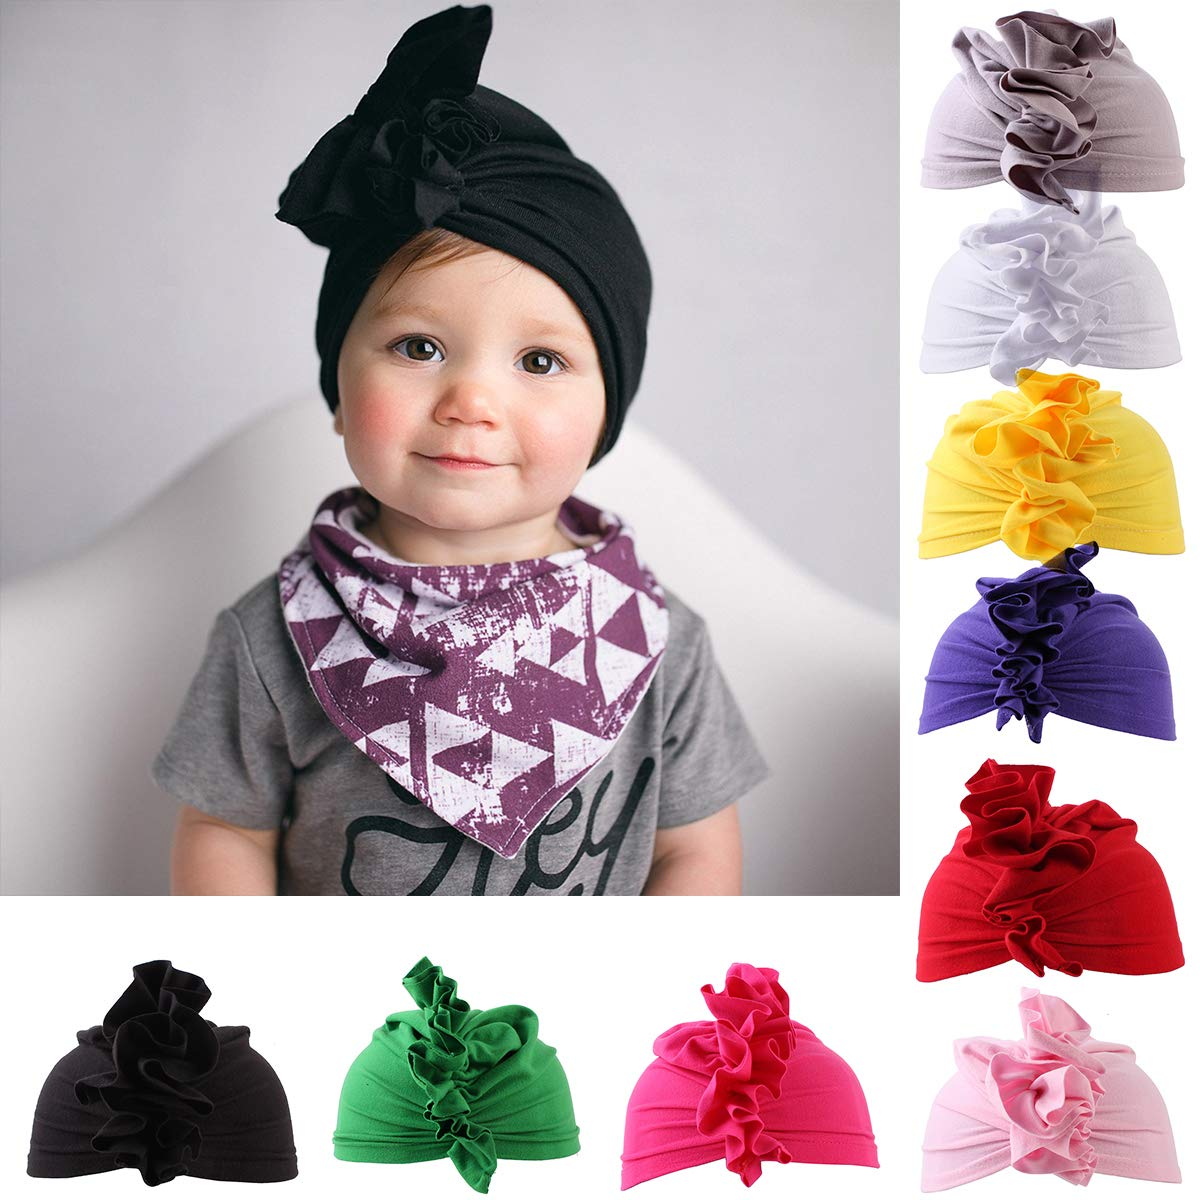 631335fdd9dde Amazon.com: Toddler Baby Girl Hat Baby Headband Pure Color Ruffled ...